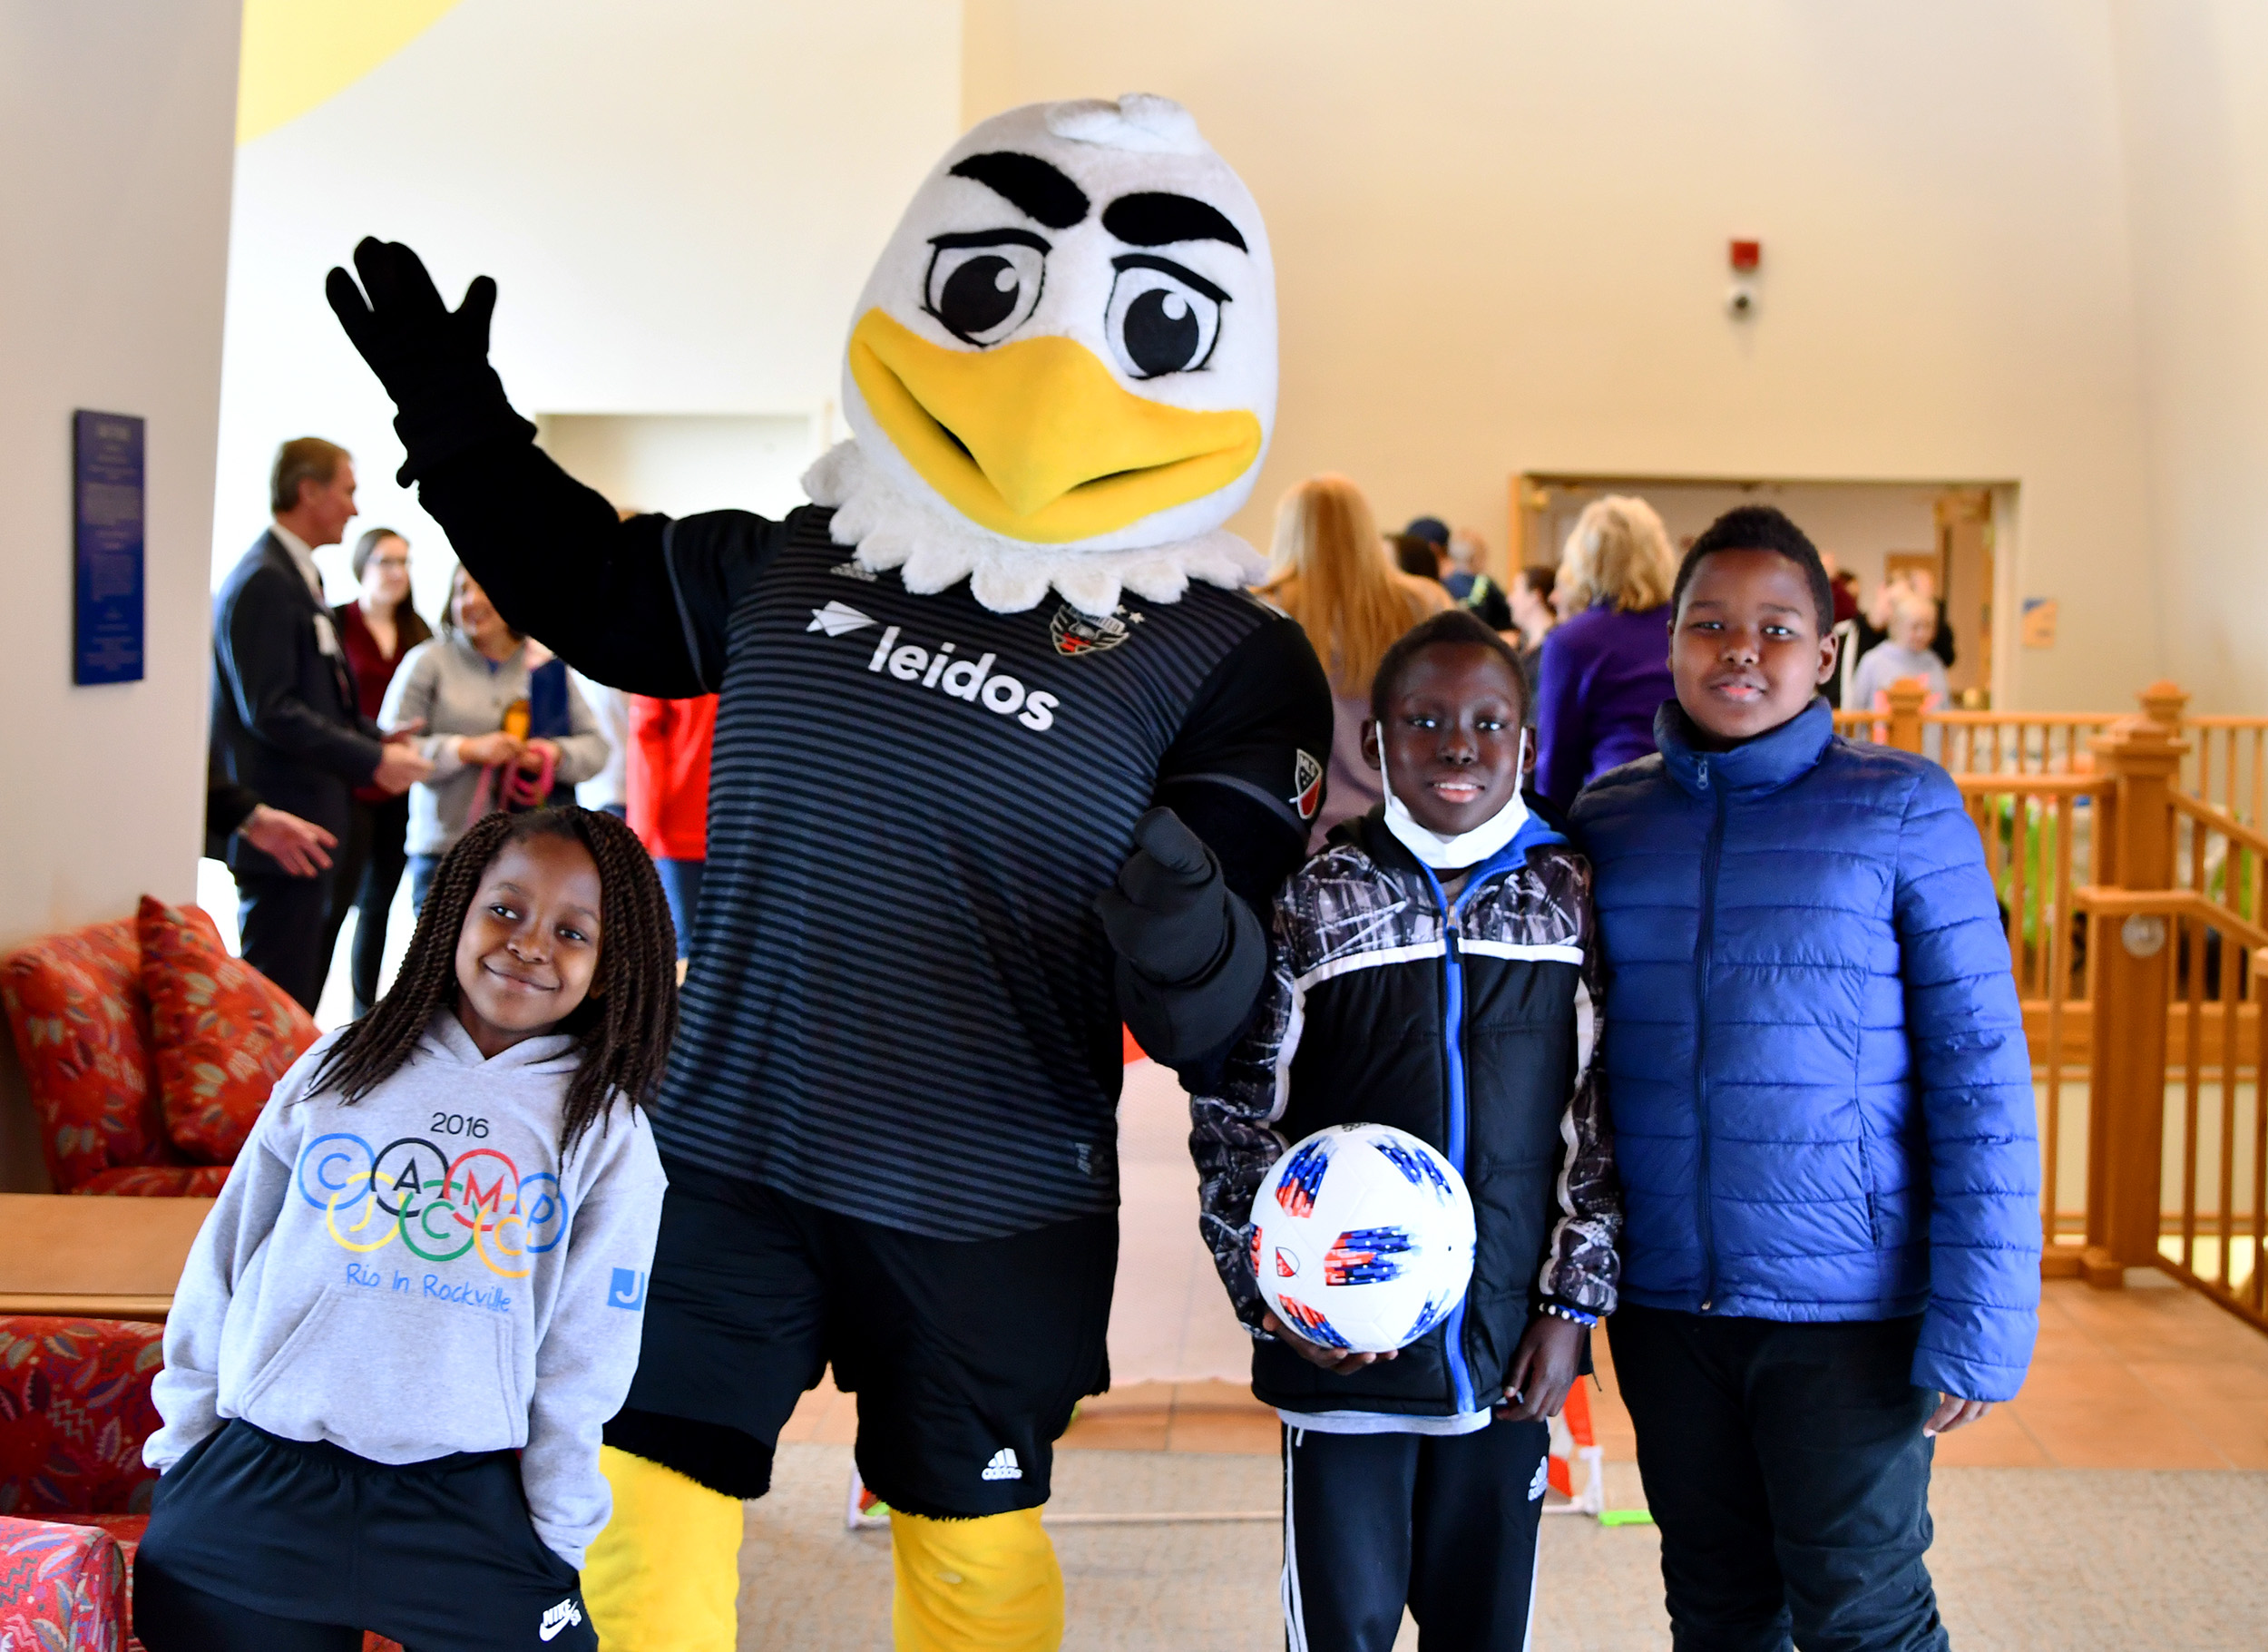 Eagle mascot with three kids pose for a photo